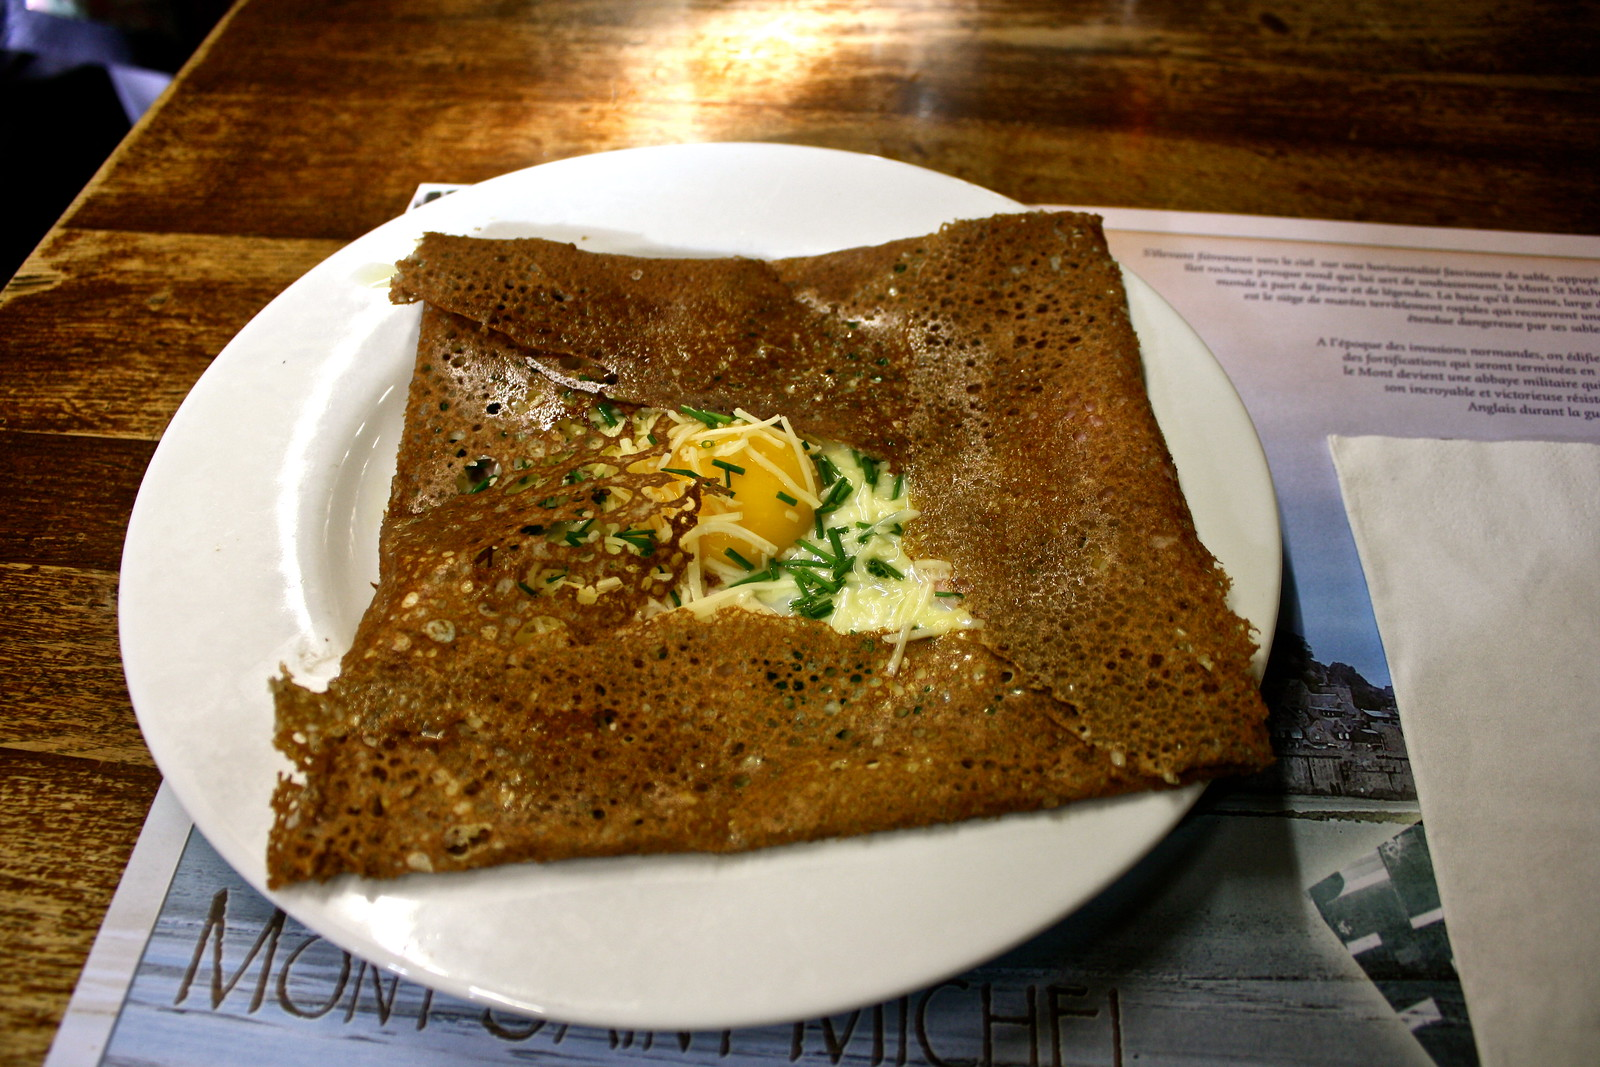 Galette eaten at Mont-Saint-Michel, France